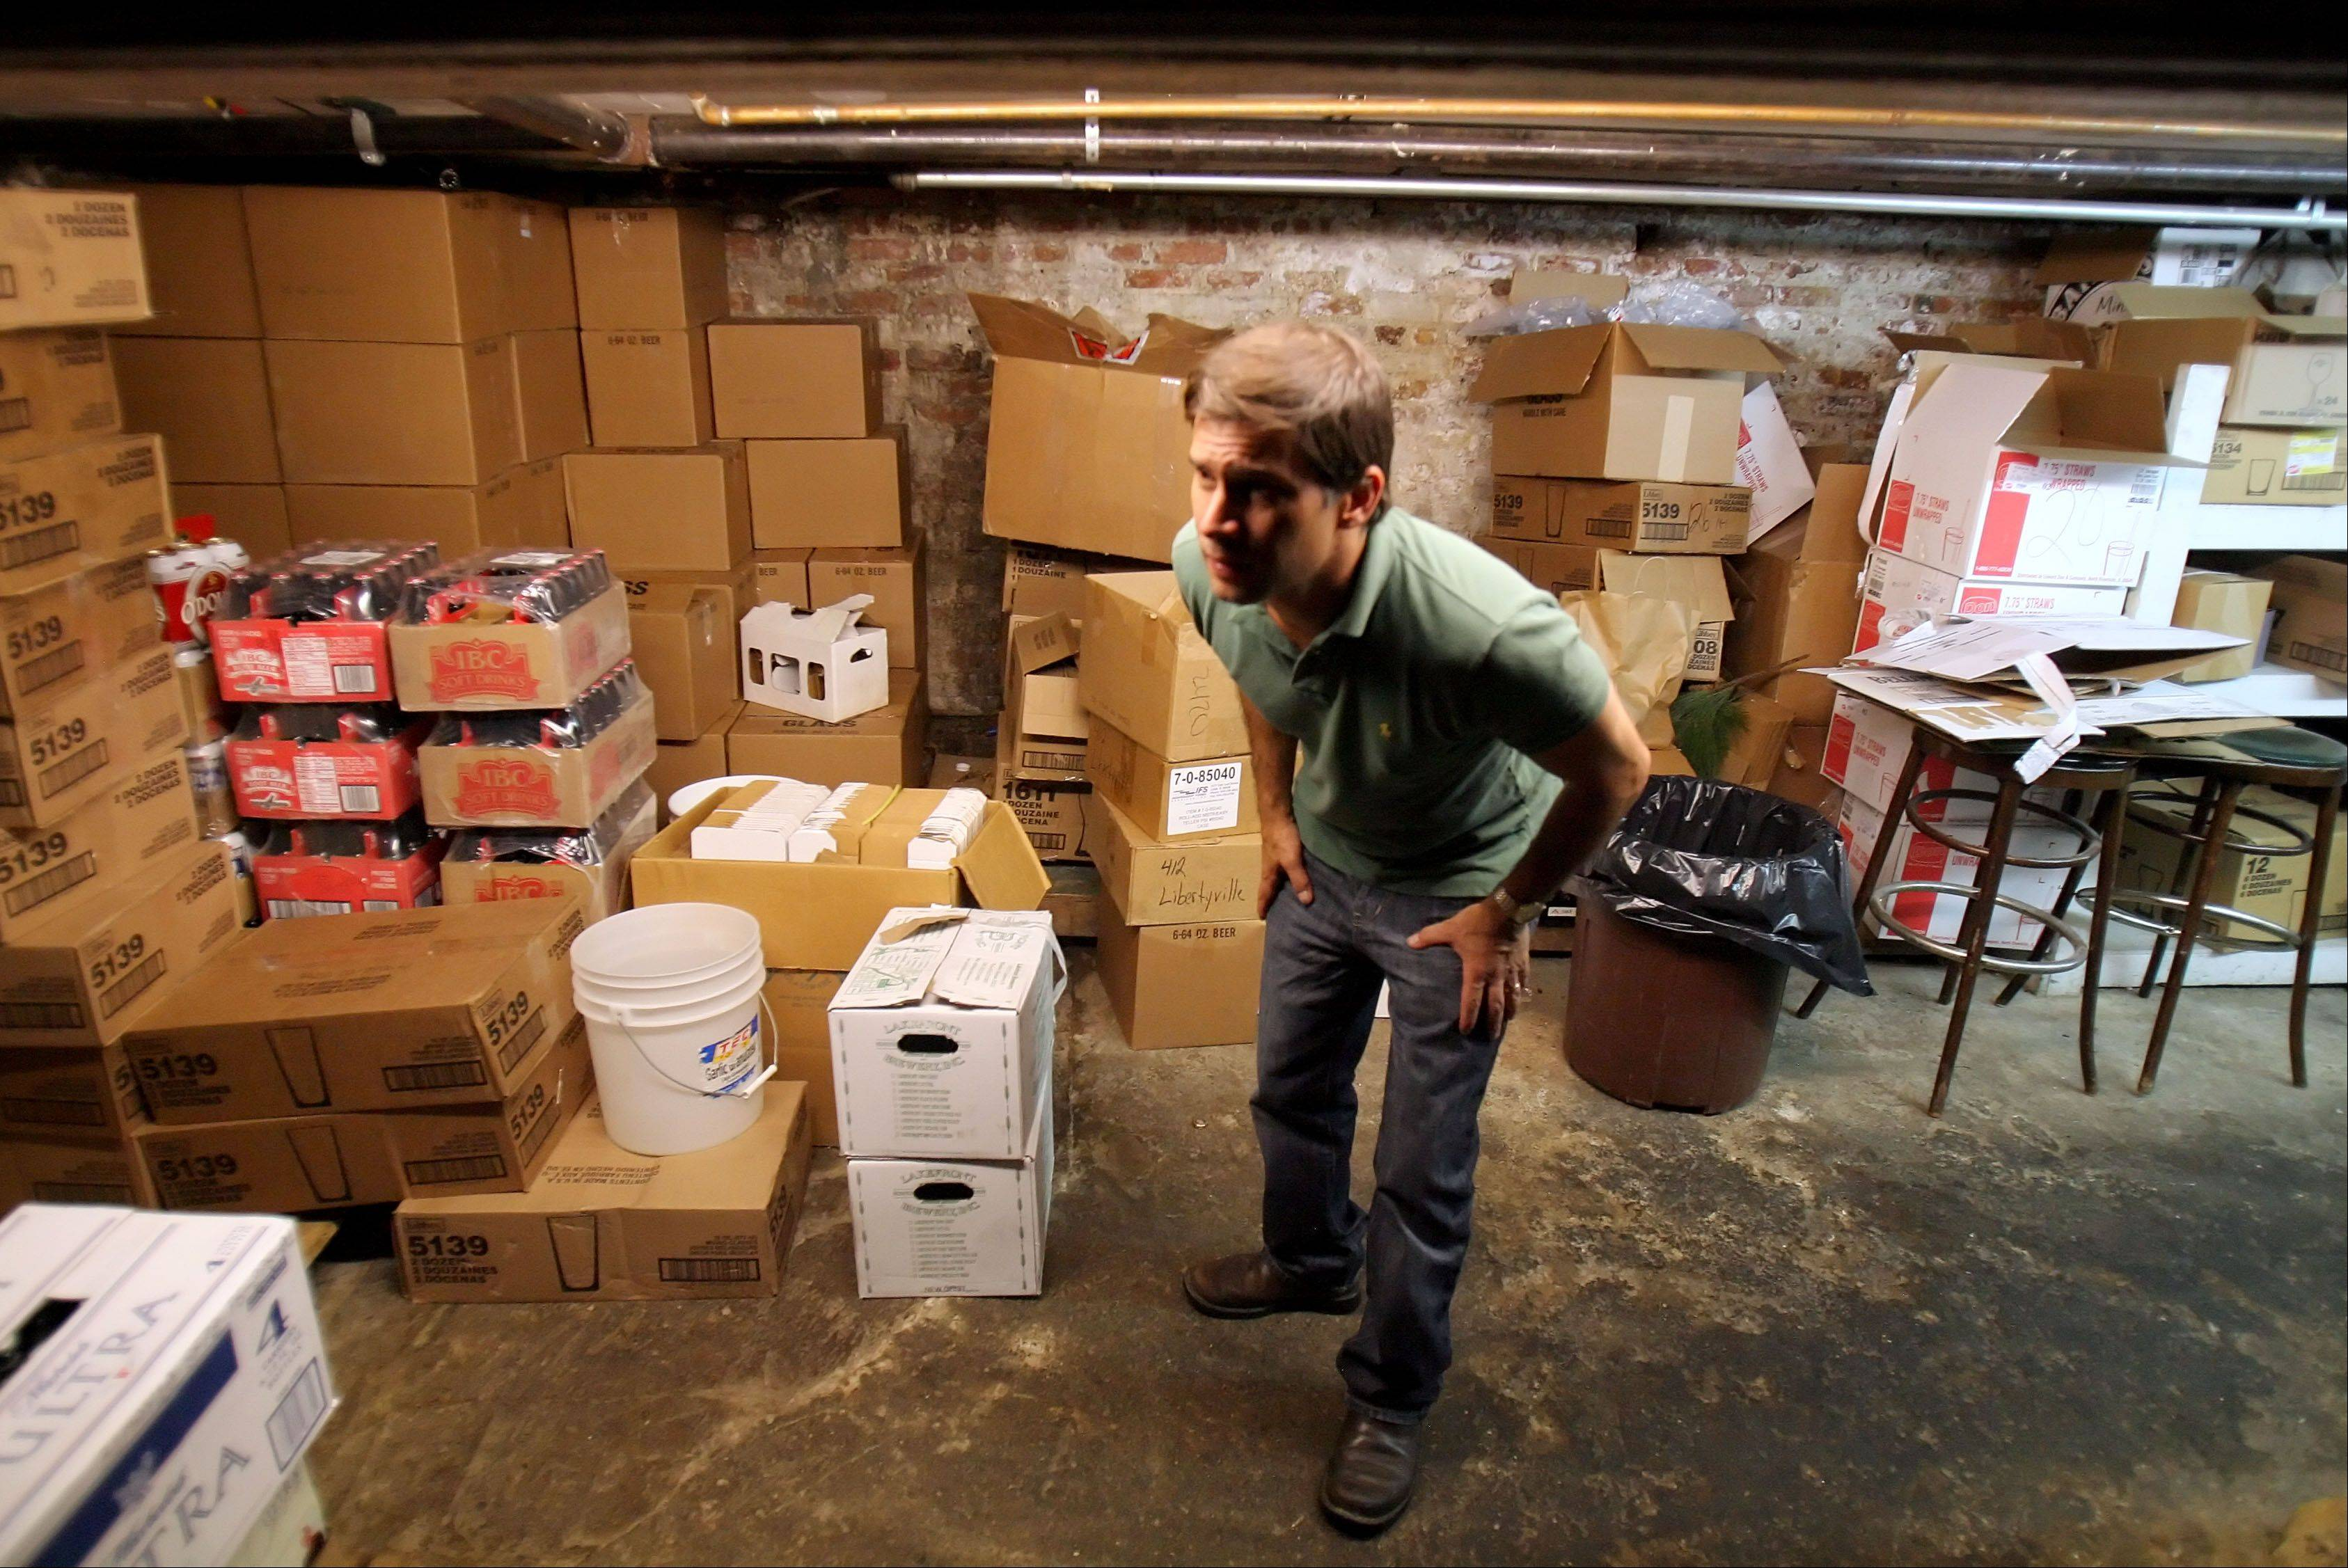 Brian Grano, proprietor of Mickey Finn's ducks as he traverses the basement that has remained virtually unchanged for 100 years. The Libertyville brew pub plans to move into a new, larger facility a block away by next fall.